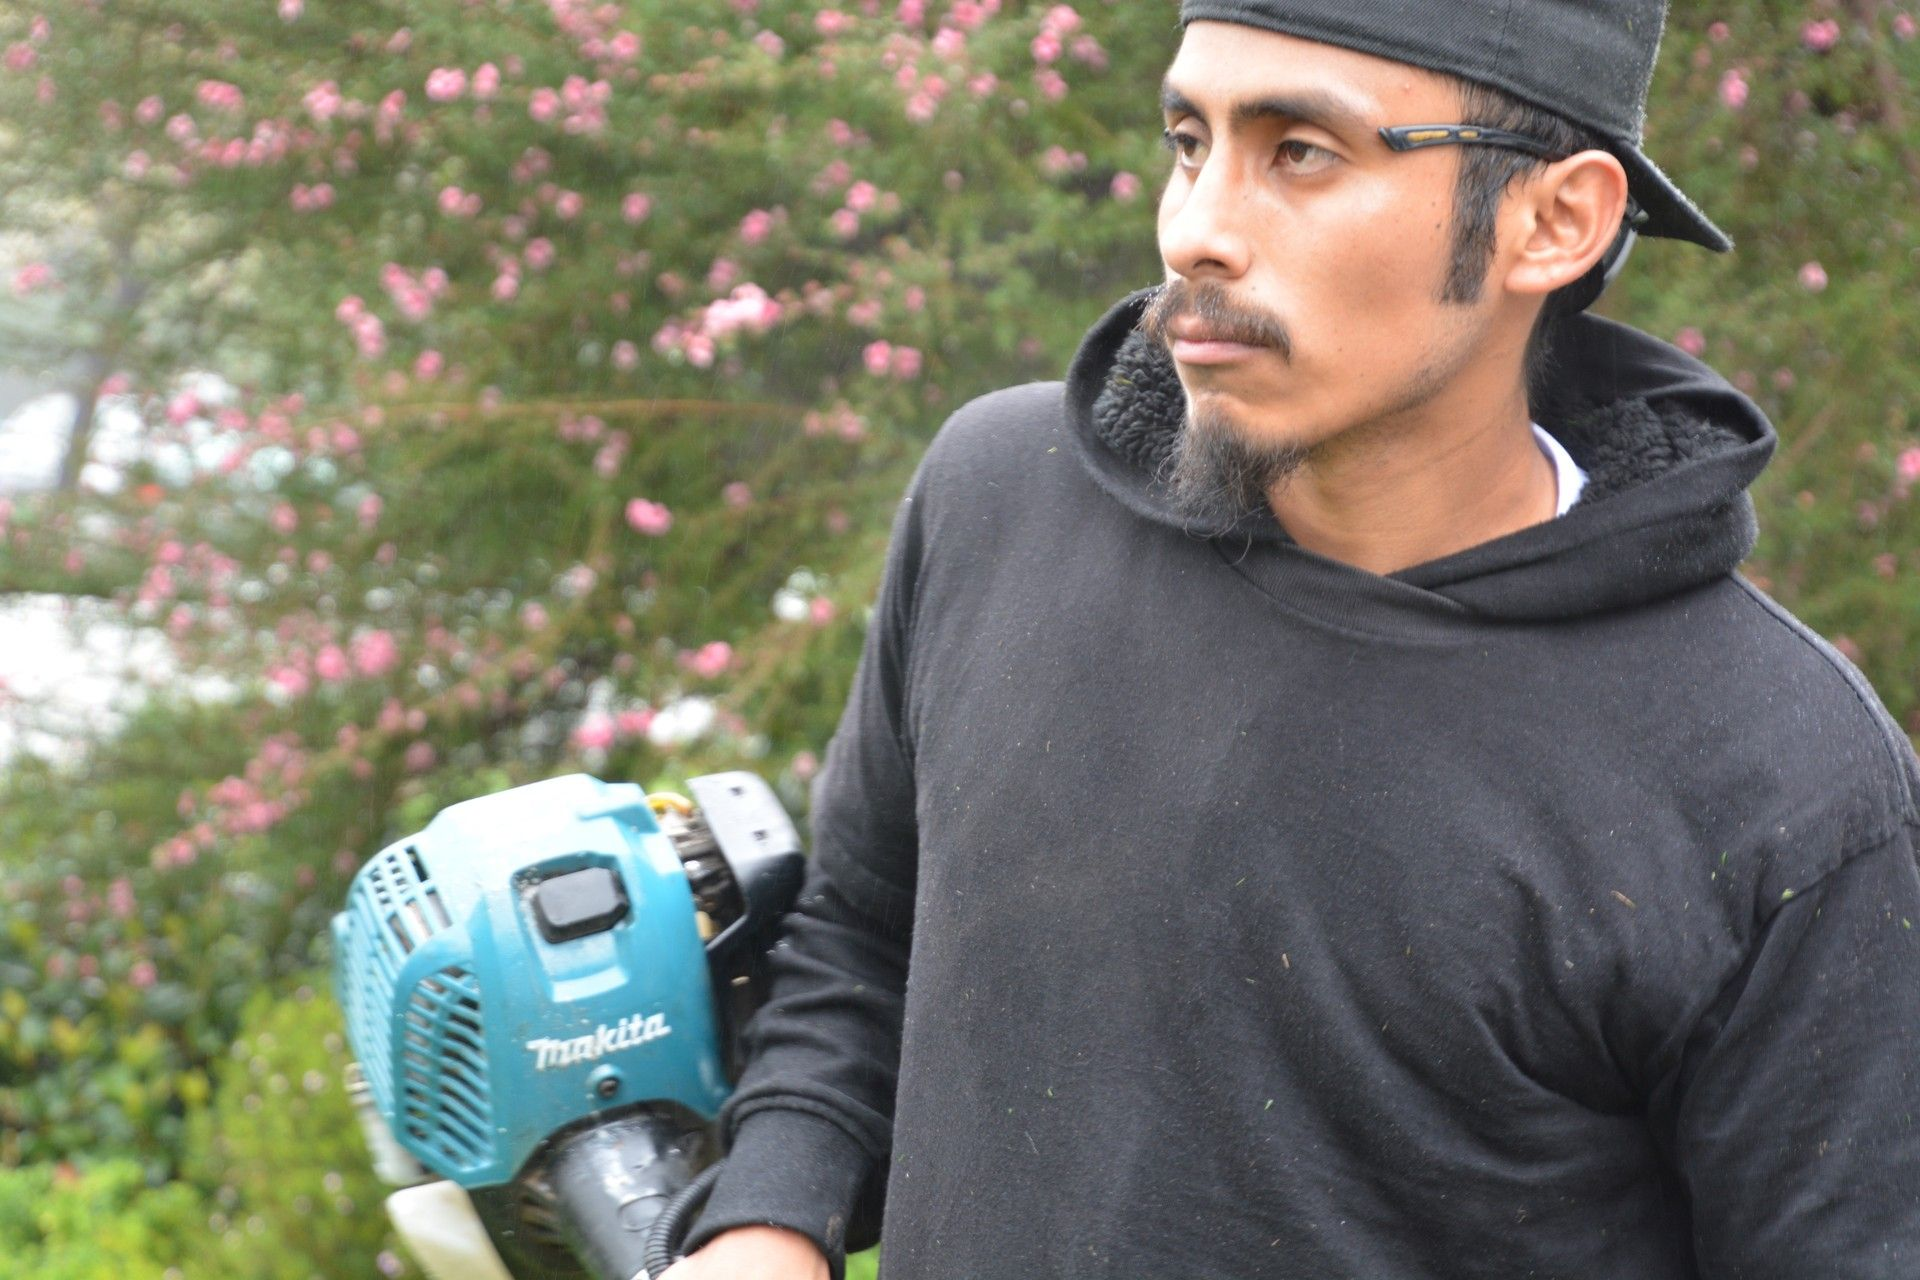 More Pollution Than Cars? GasPowered Gardening Equipment